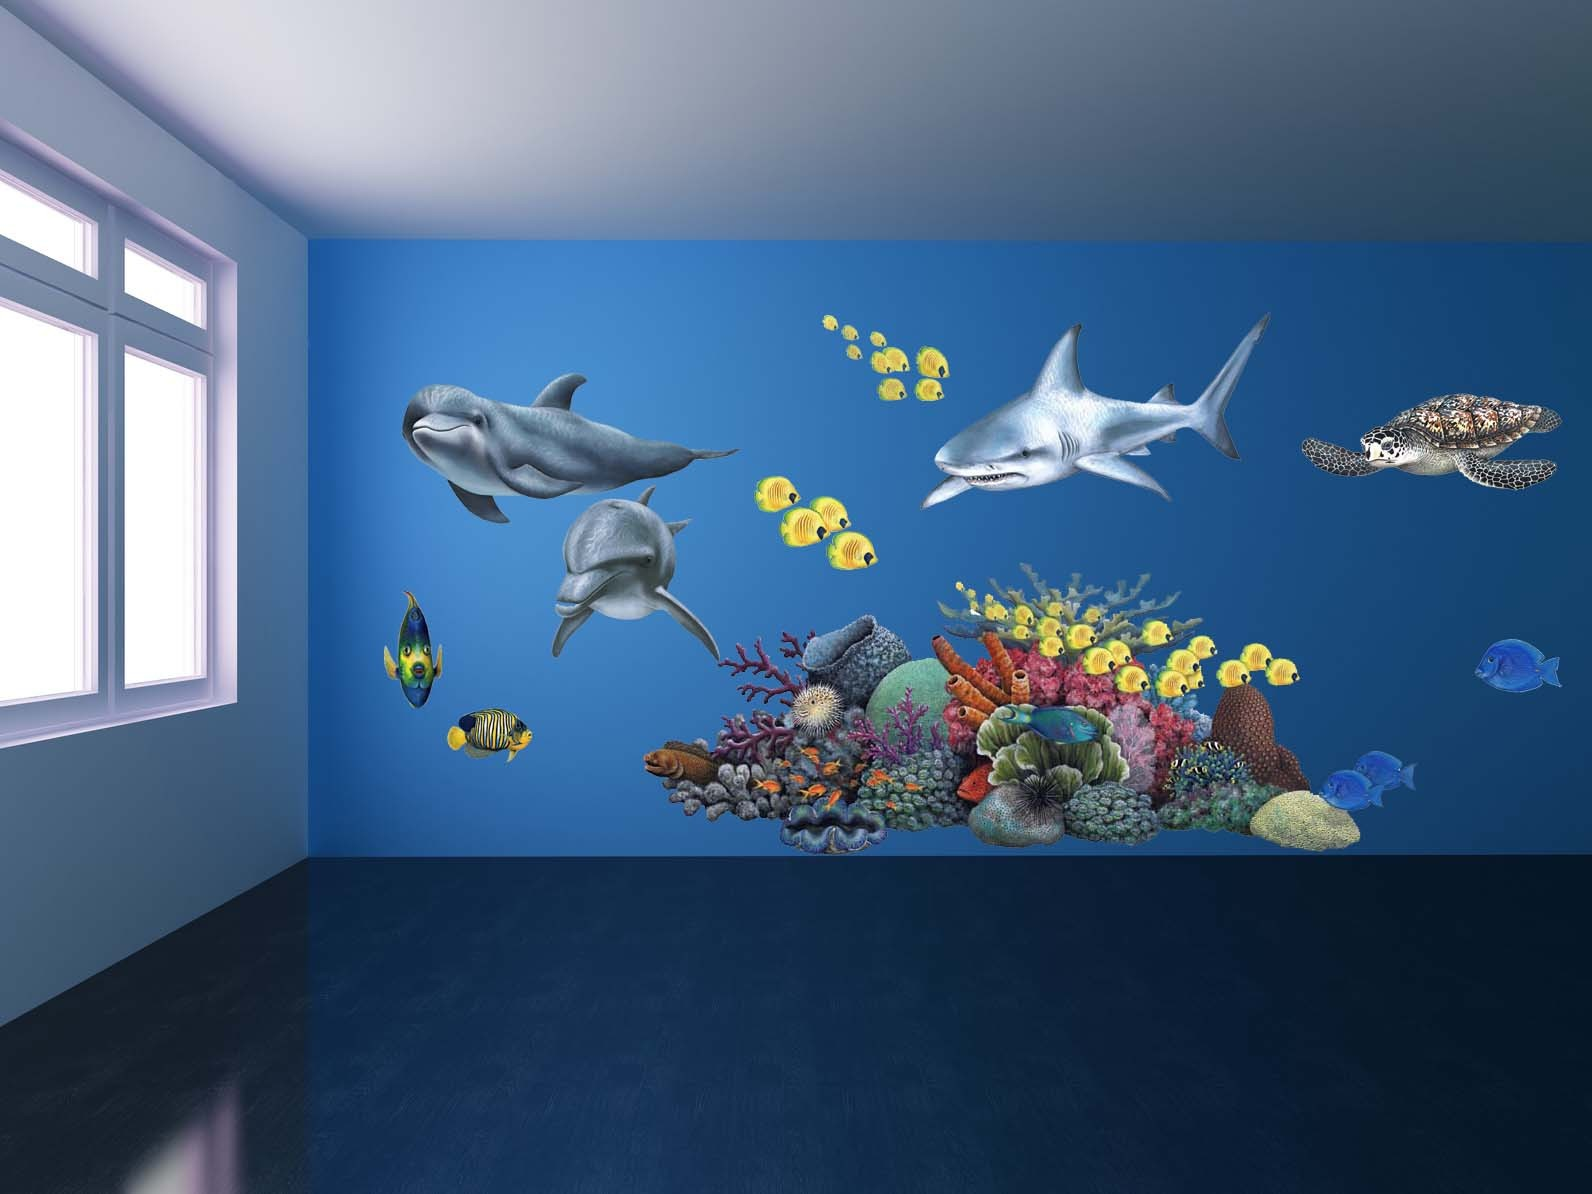 Wall Mural Childrens Bedroom Giant Shark Wall Sticker Giant Animal Decals Fun Decor